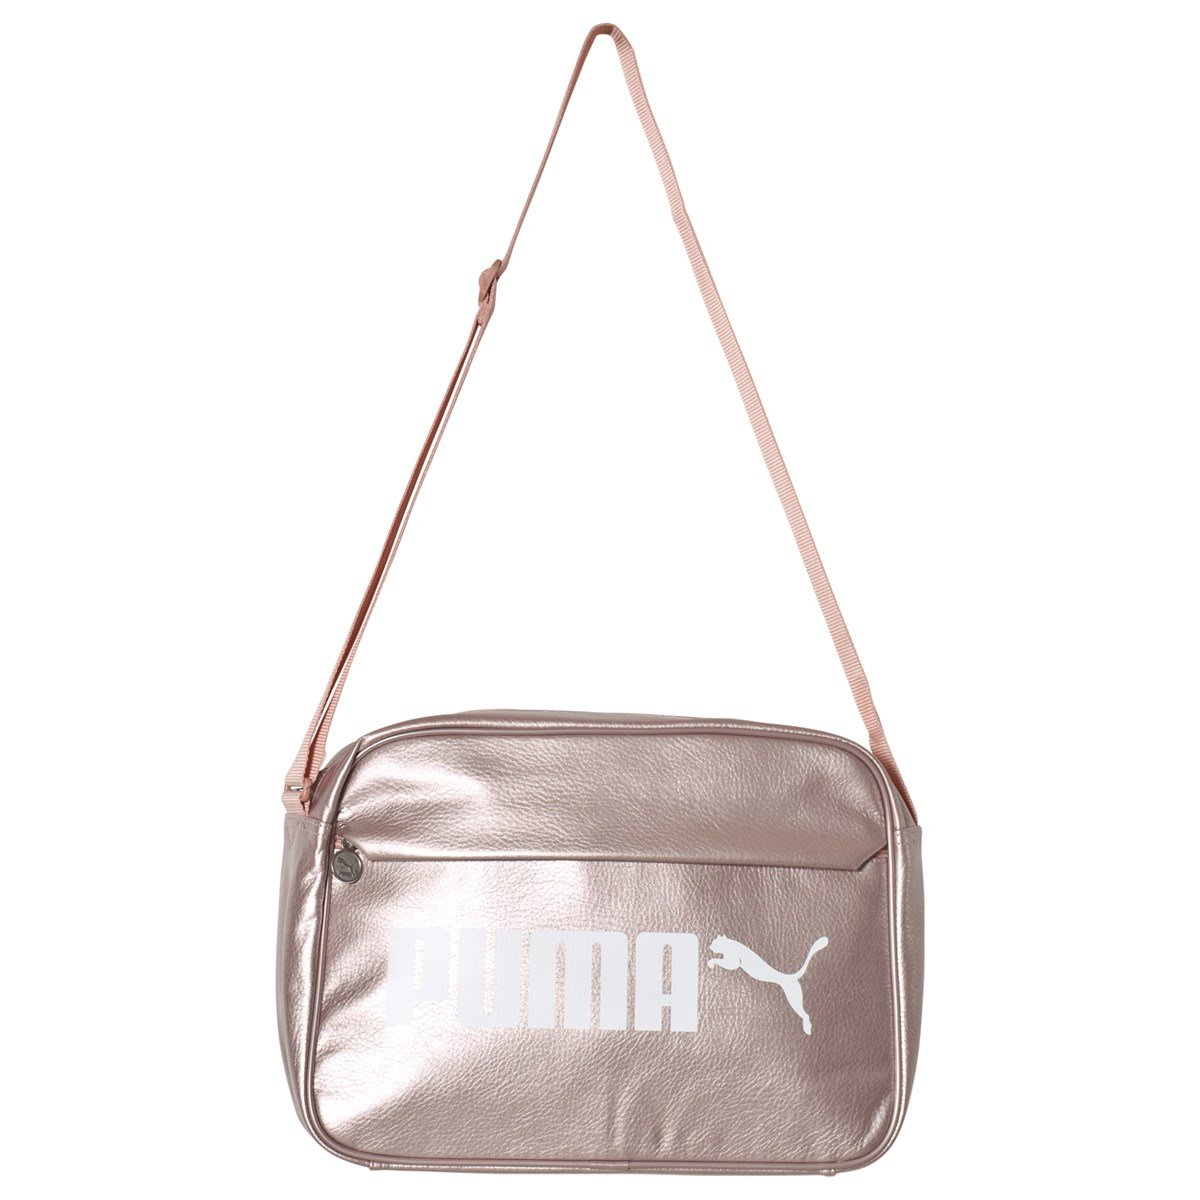 6be816ee22 Puma - Campus Reporter Bag Peach Beige-Metallic - Babyshop.com